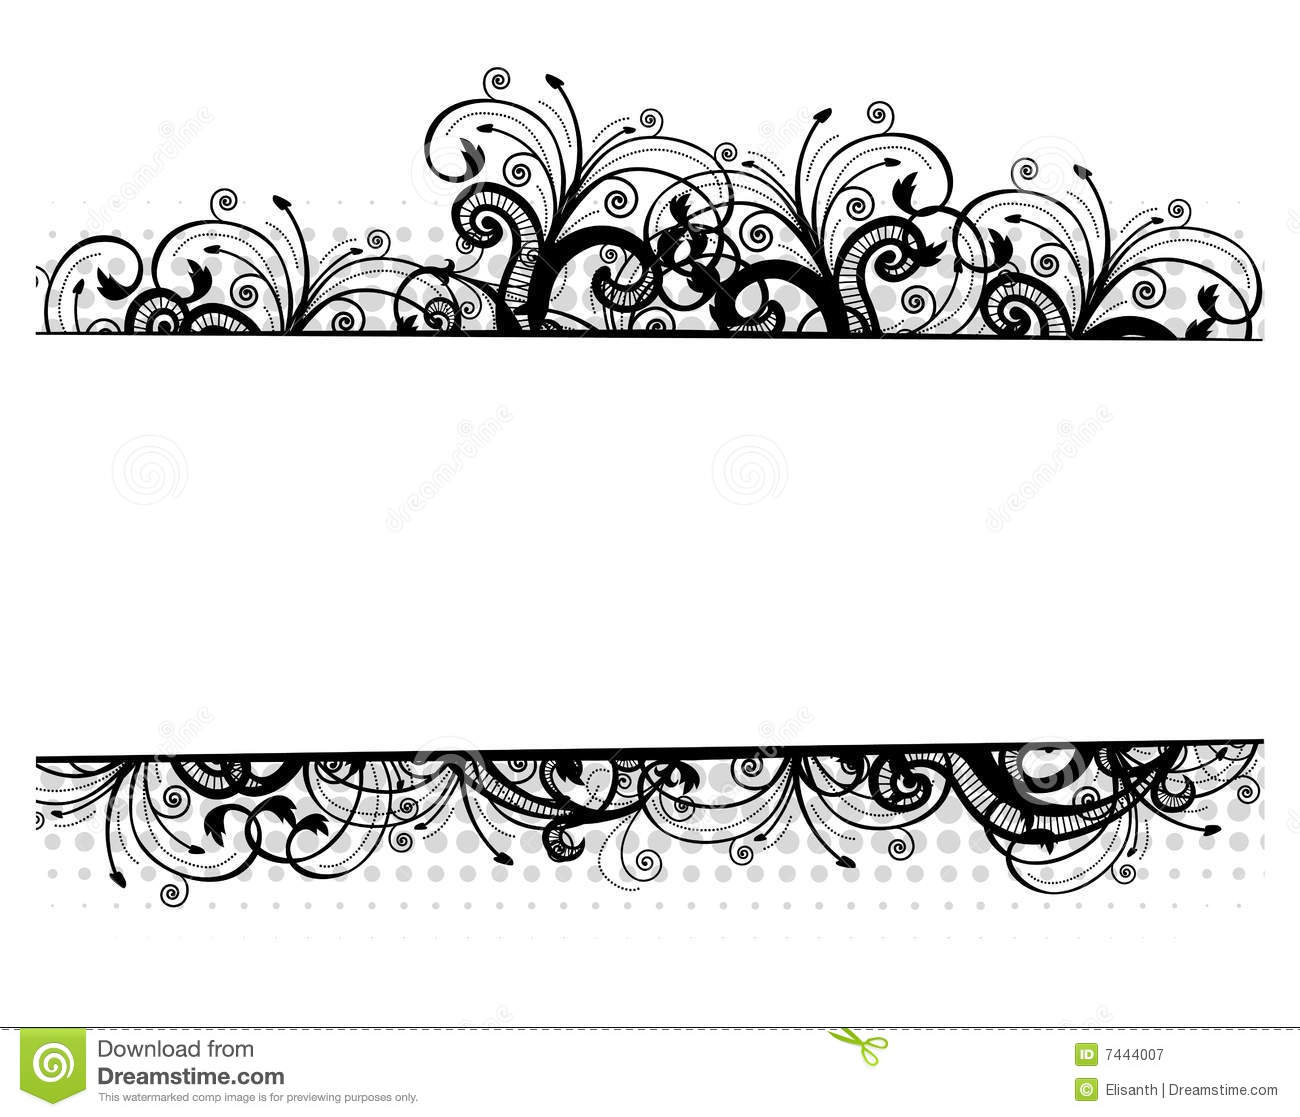 16 Vector Flower Black Border Images - Free Vector Borders ...